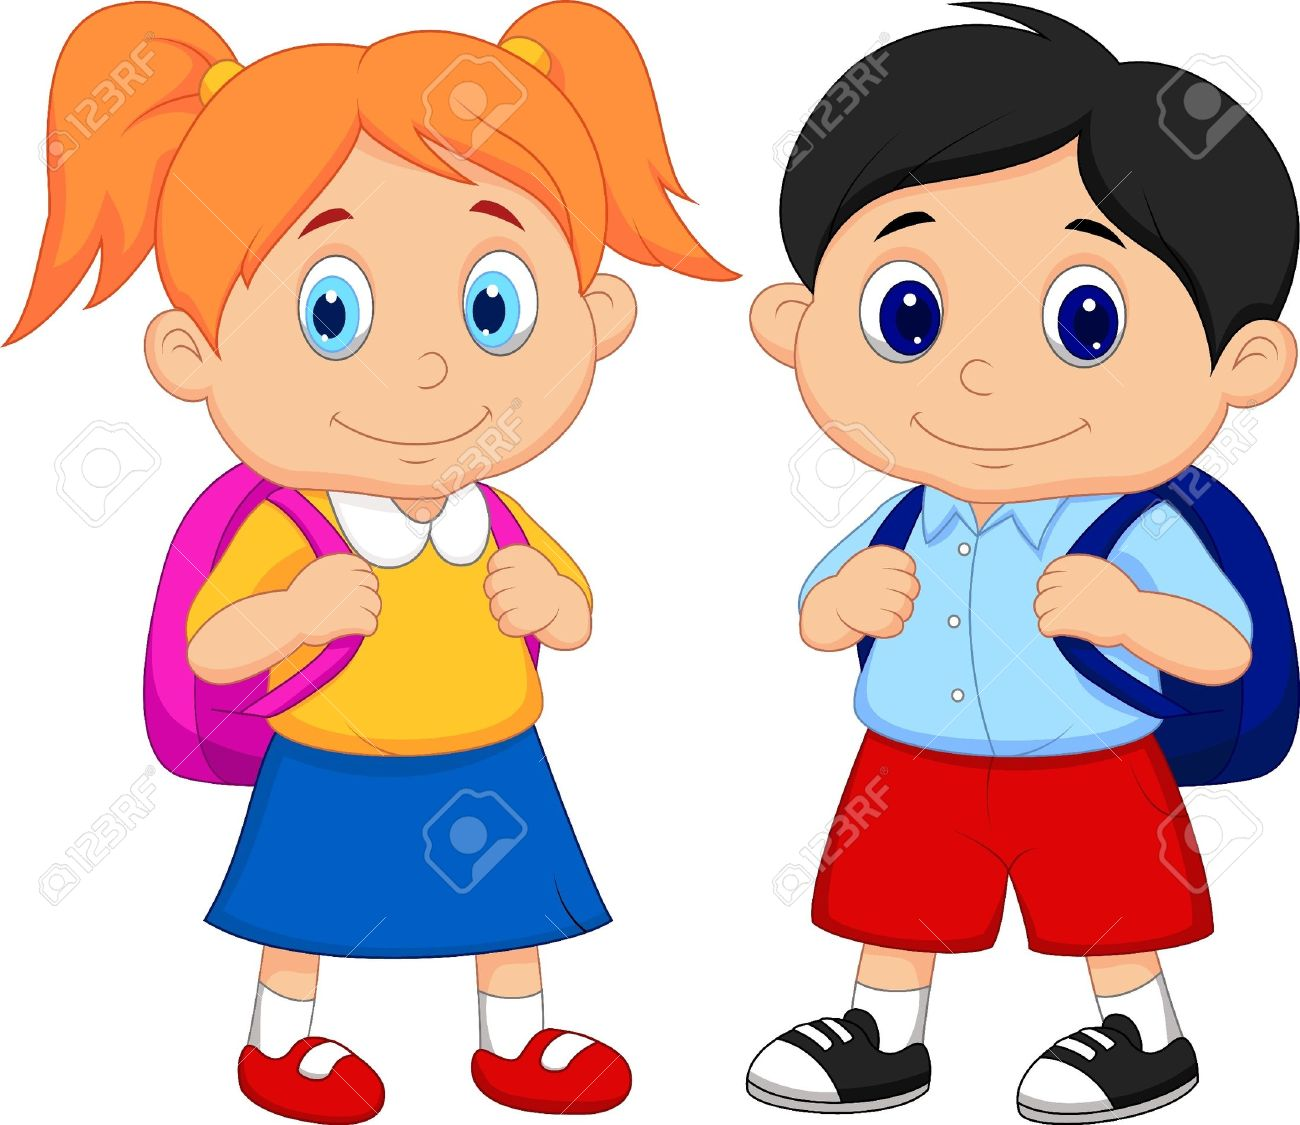 Boy and girl cartoon with backpacks.